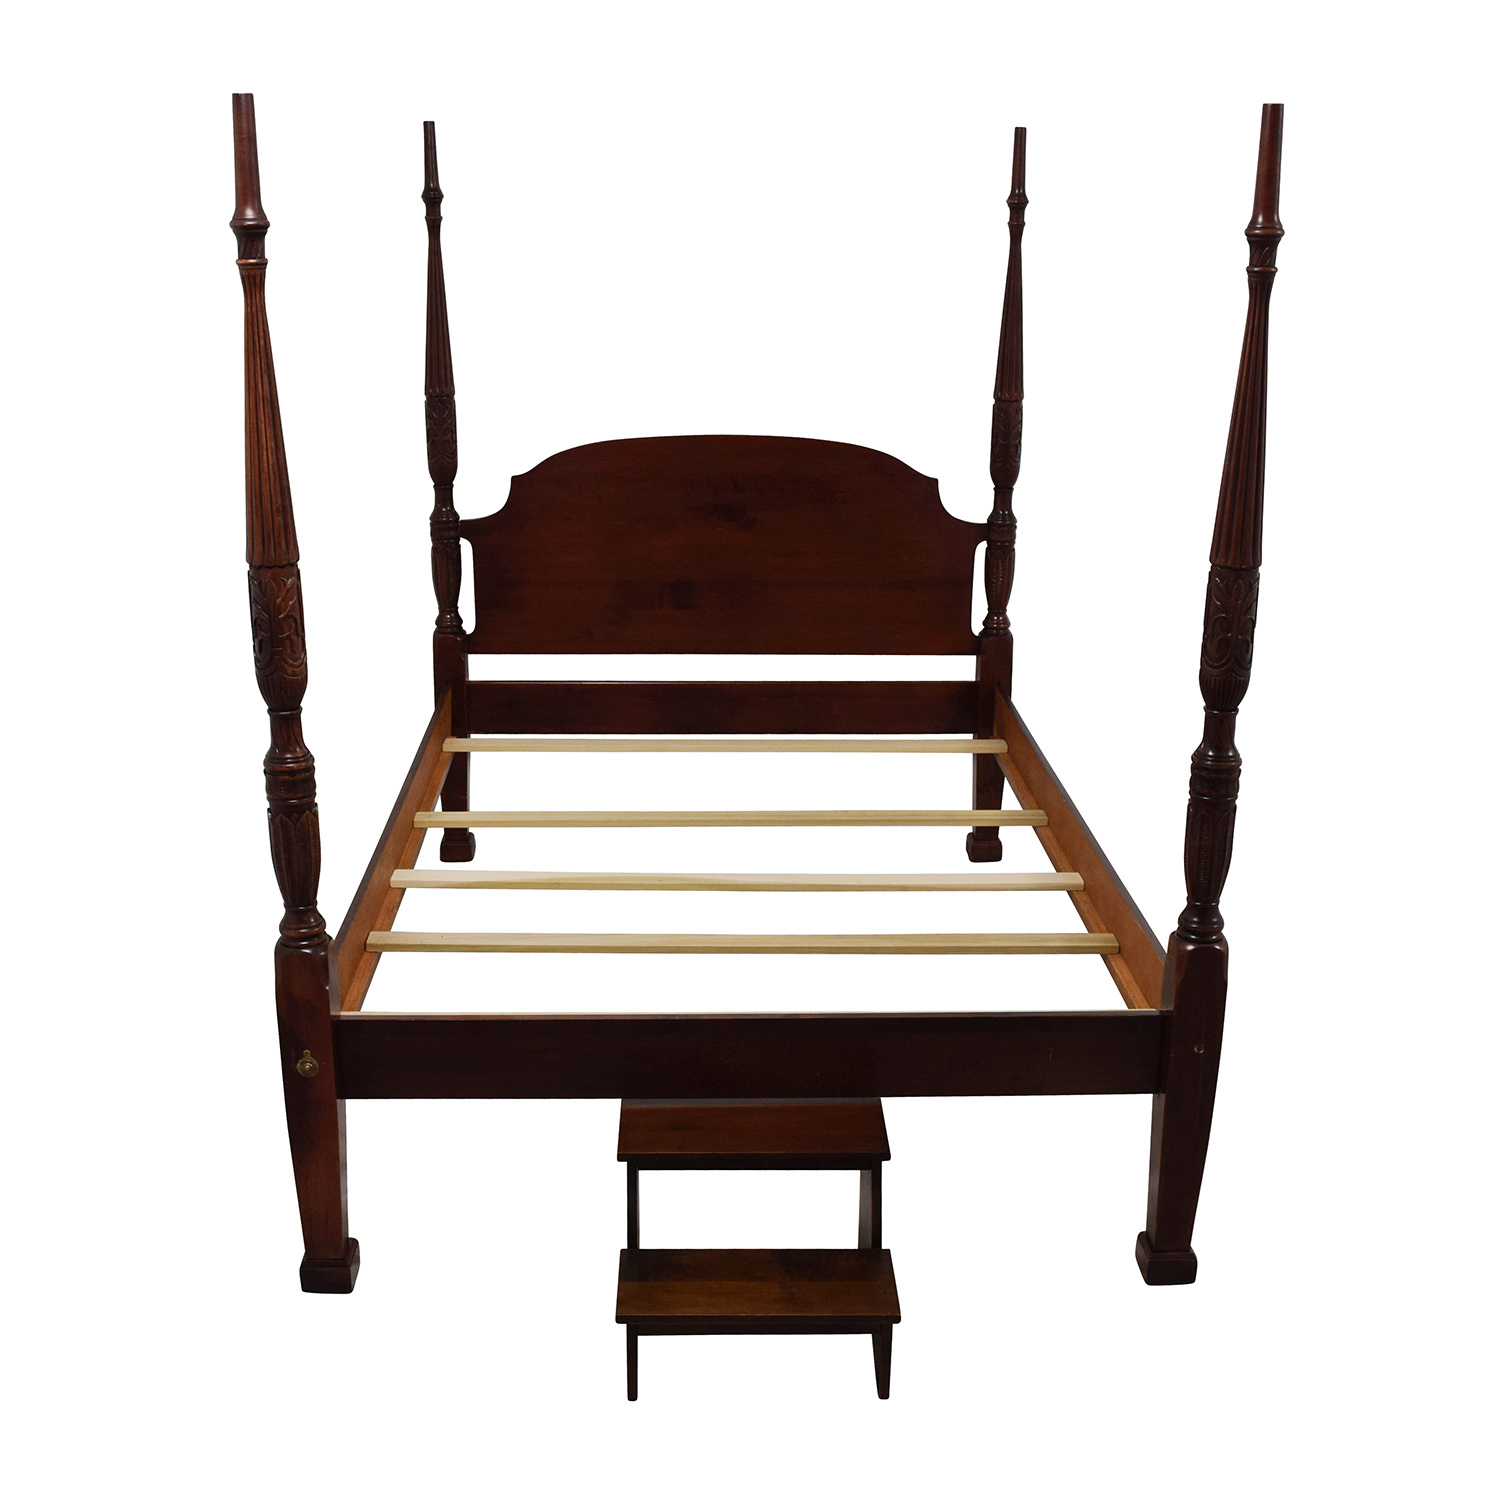 Prime 88 Off National Furniture Supply Furniture Supply Co Rice Queen Four Post Bed Beds Pdpeps Interior Chair Design Pdpepsorg